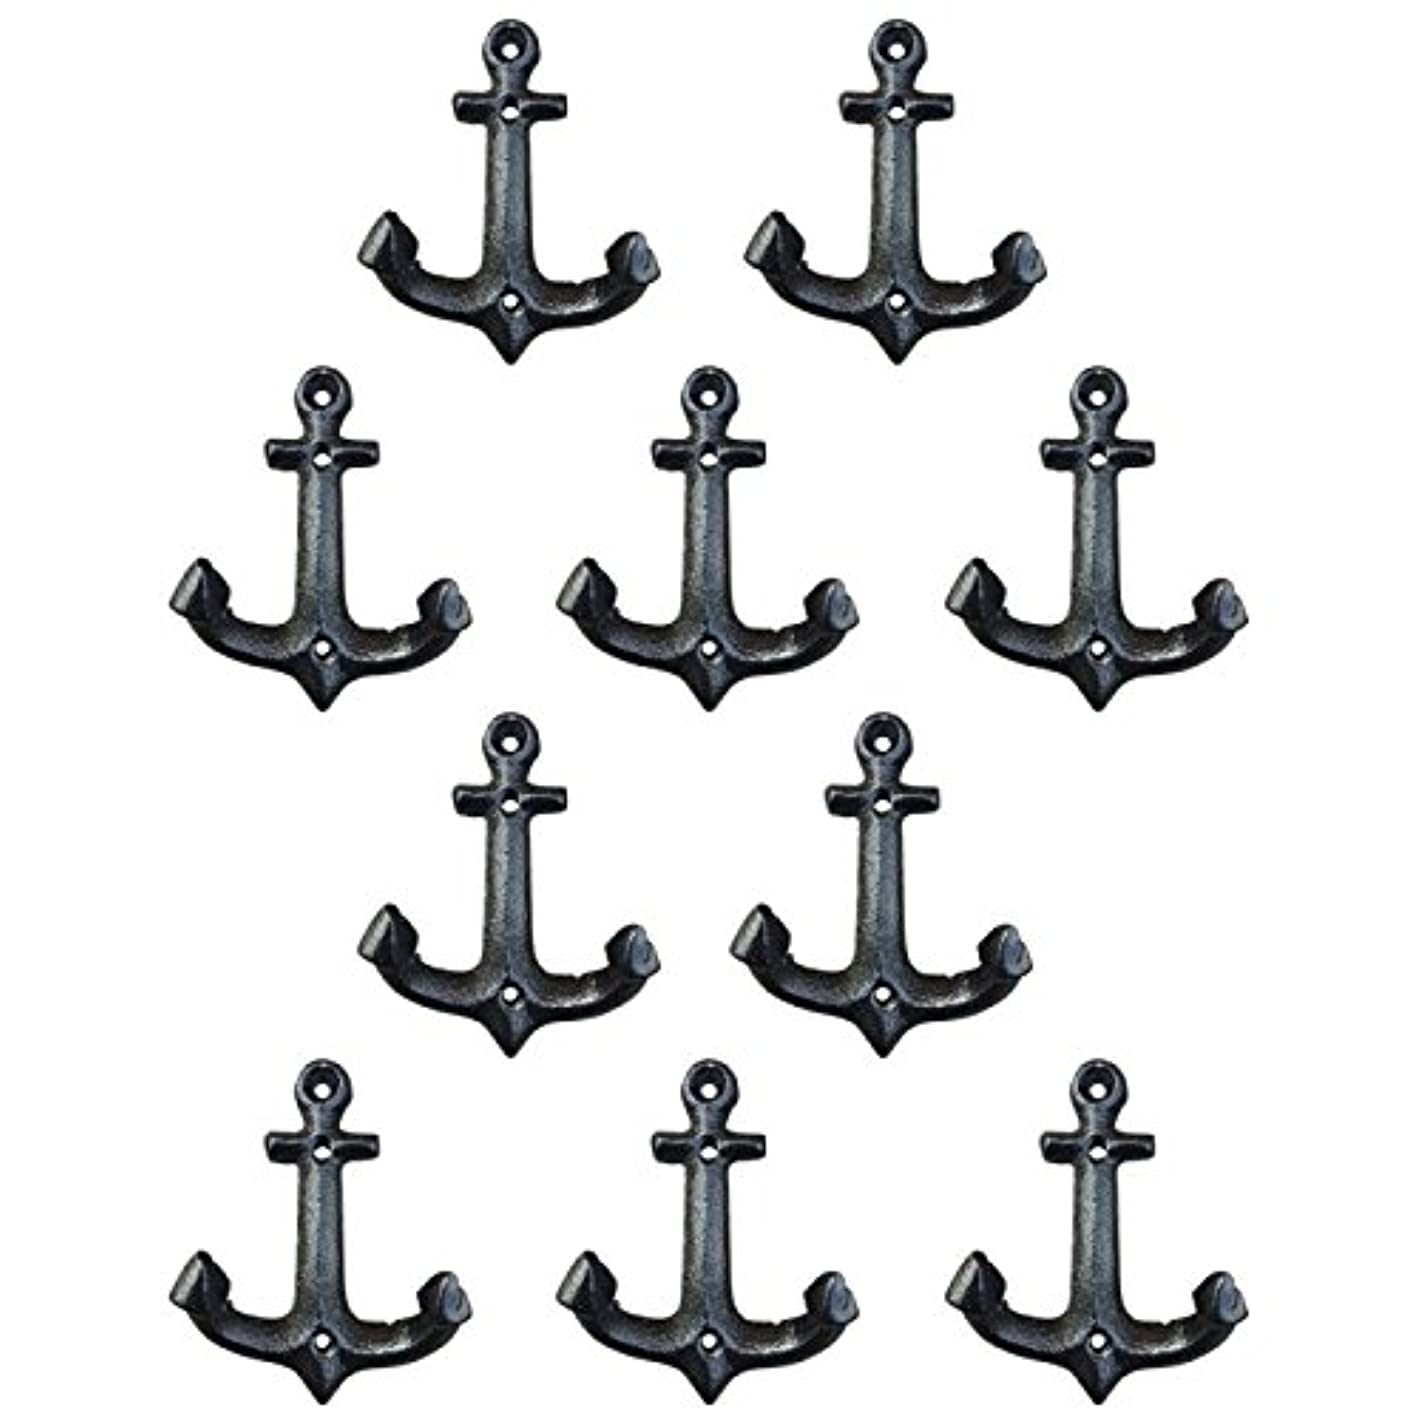 Nautical Cast Iron Ship Anchor Weathered Nautical Wall Hooks Coat Hook, Screws Included (10 PCS) bvxqal8869589